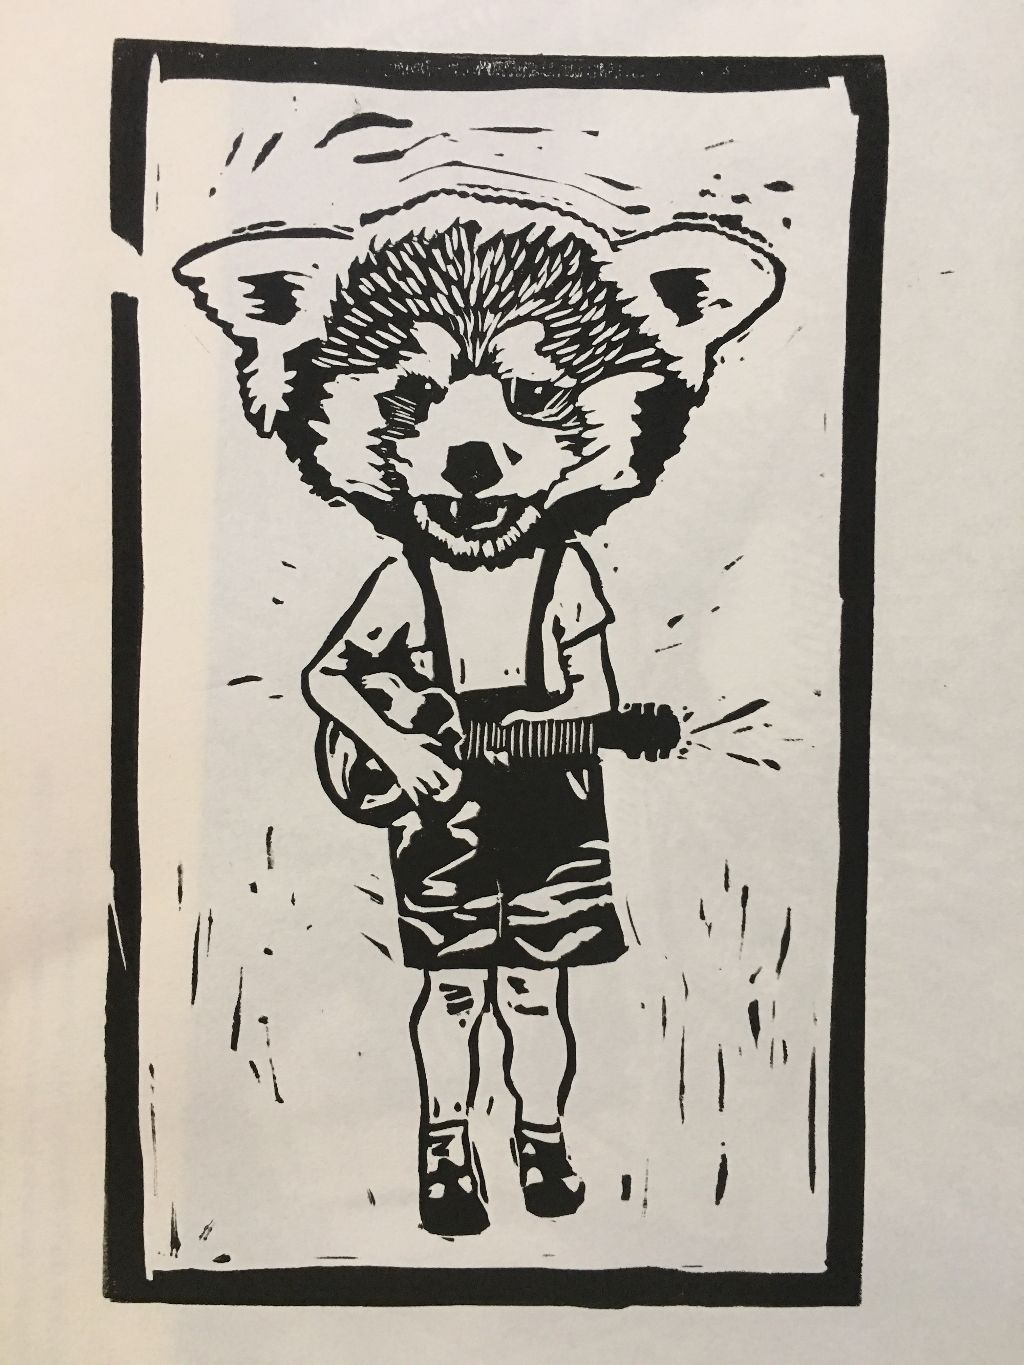 Rockin' Red Panda block print